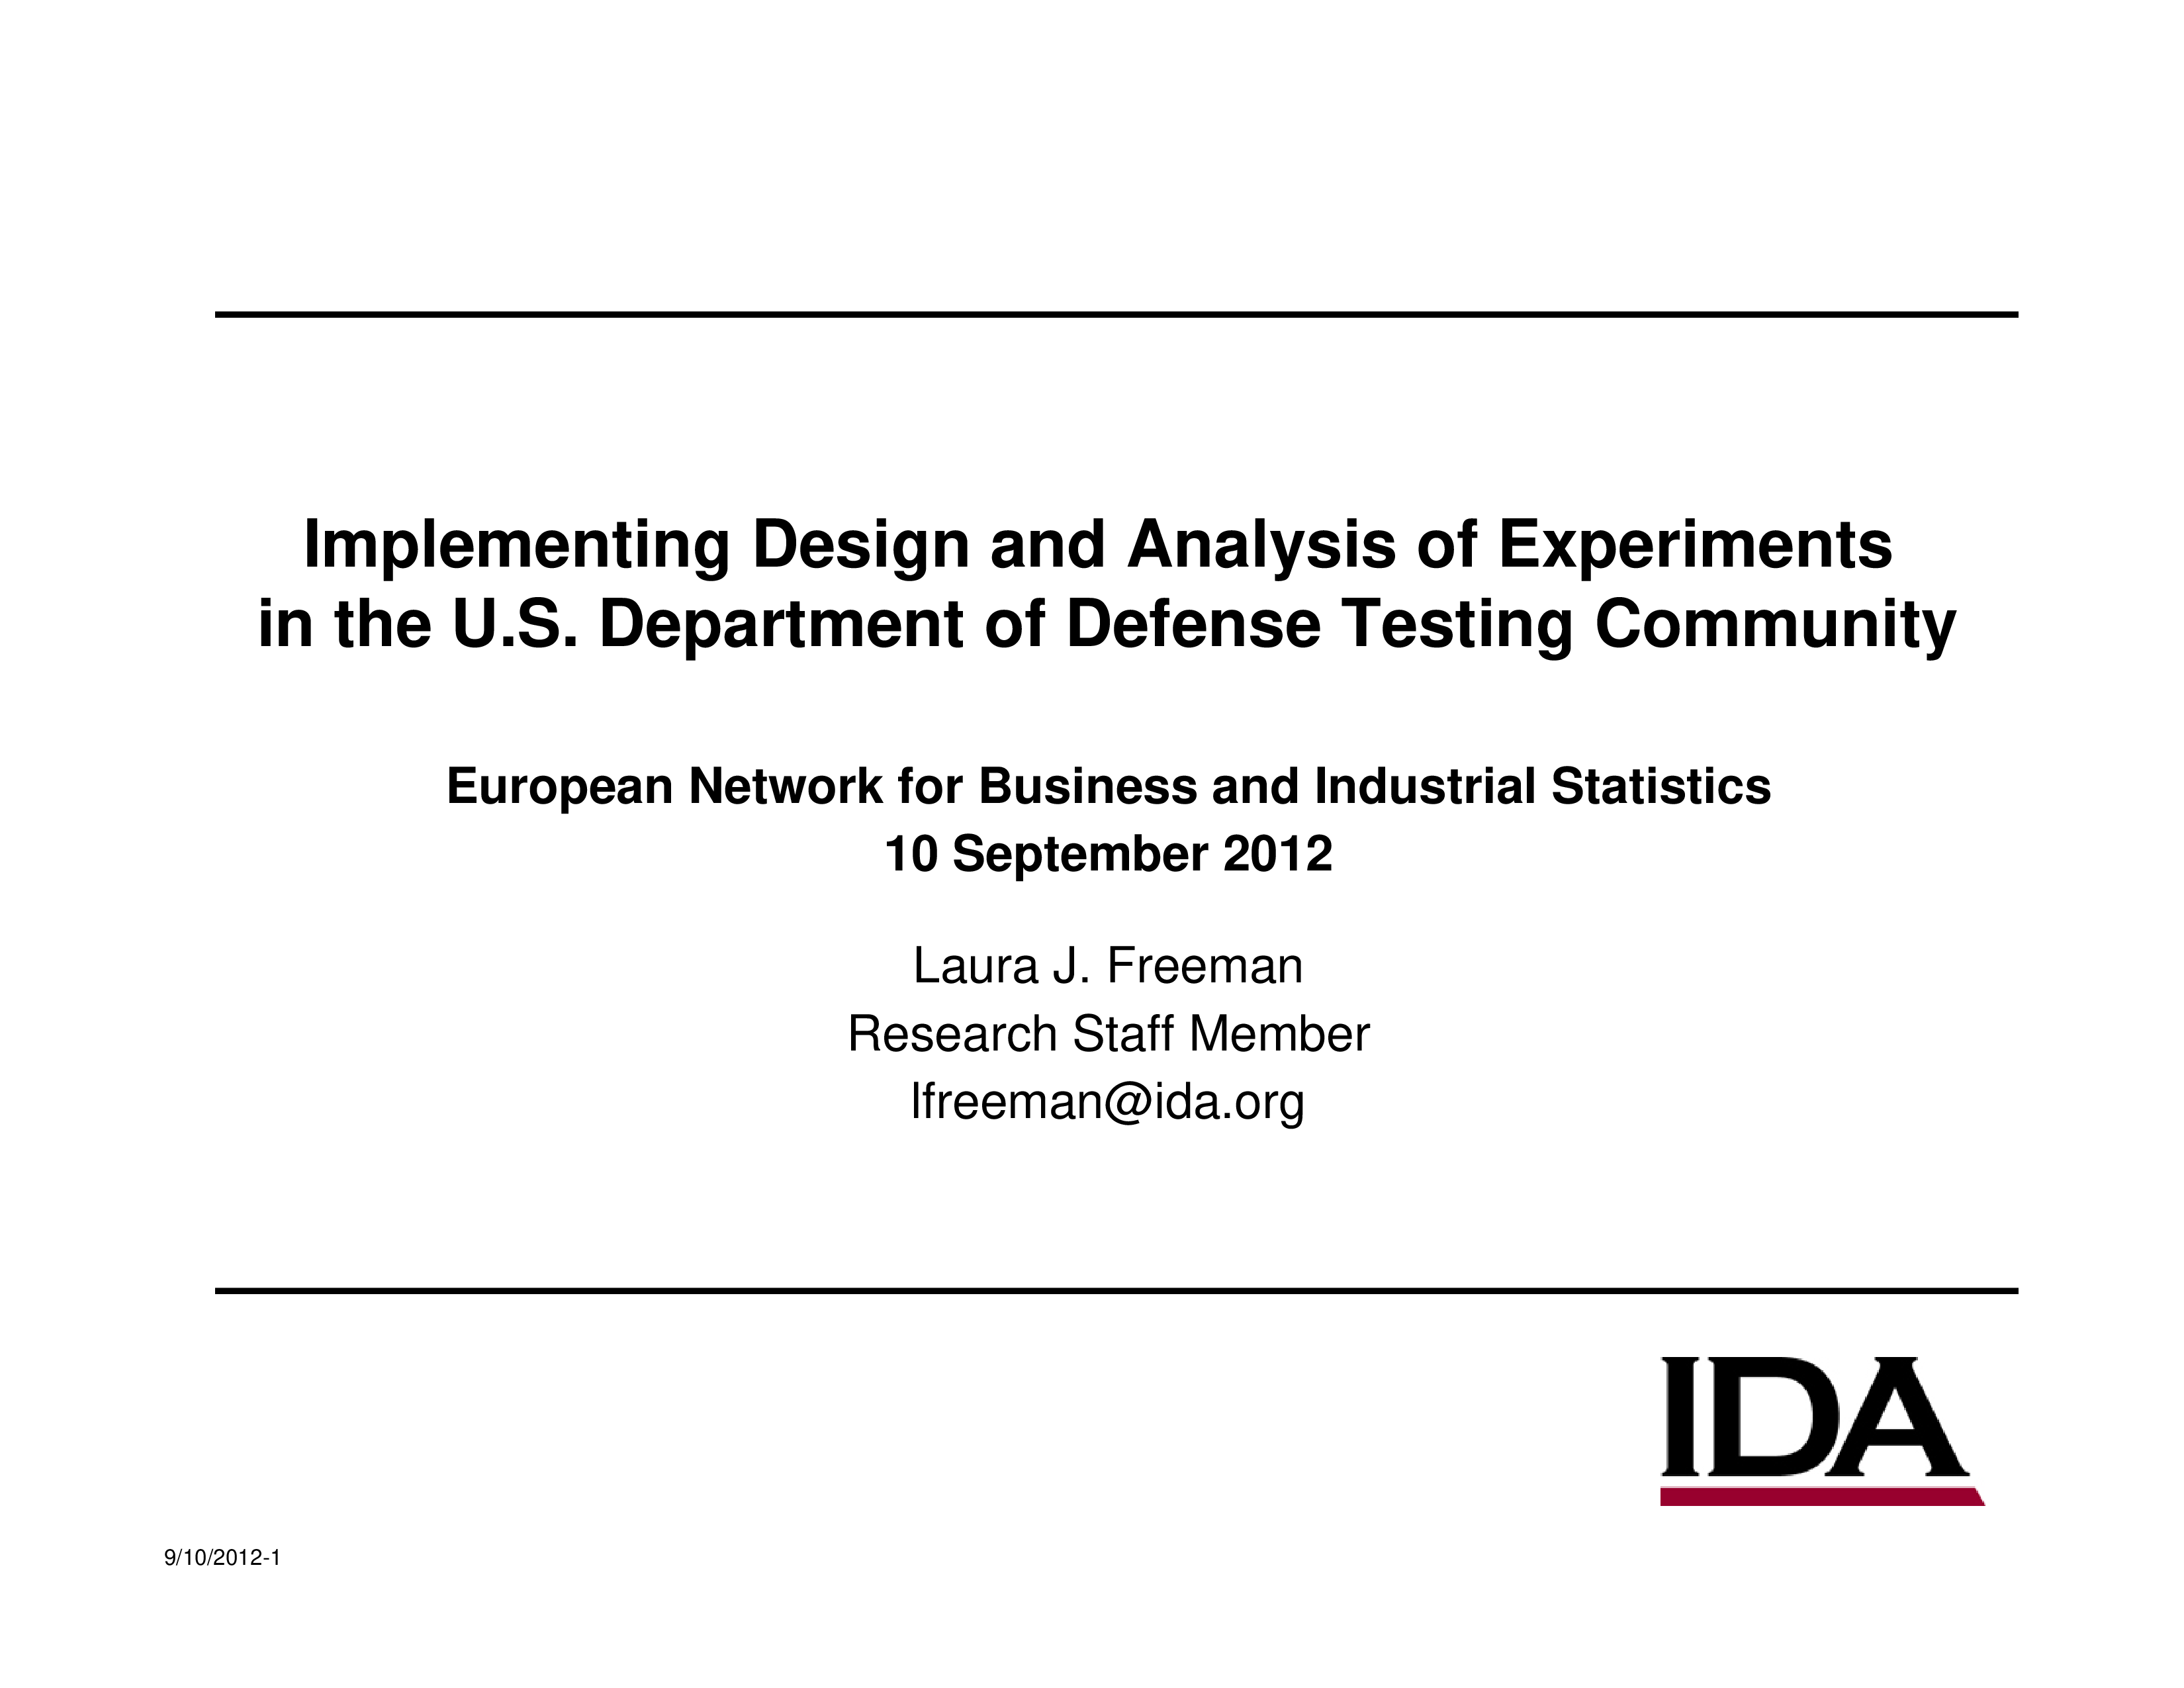 Implementing Design and Analysis of Experiments in the U.S. Department of Defense Testing Community